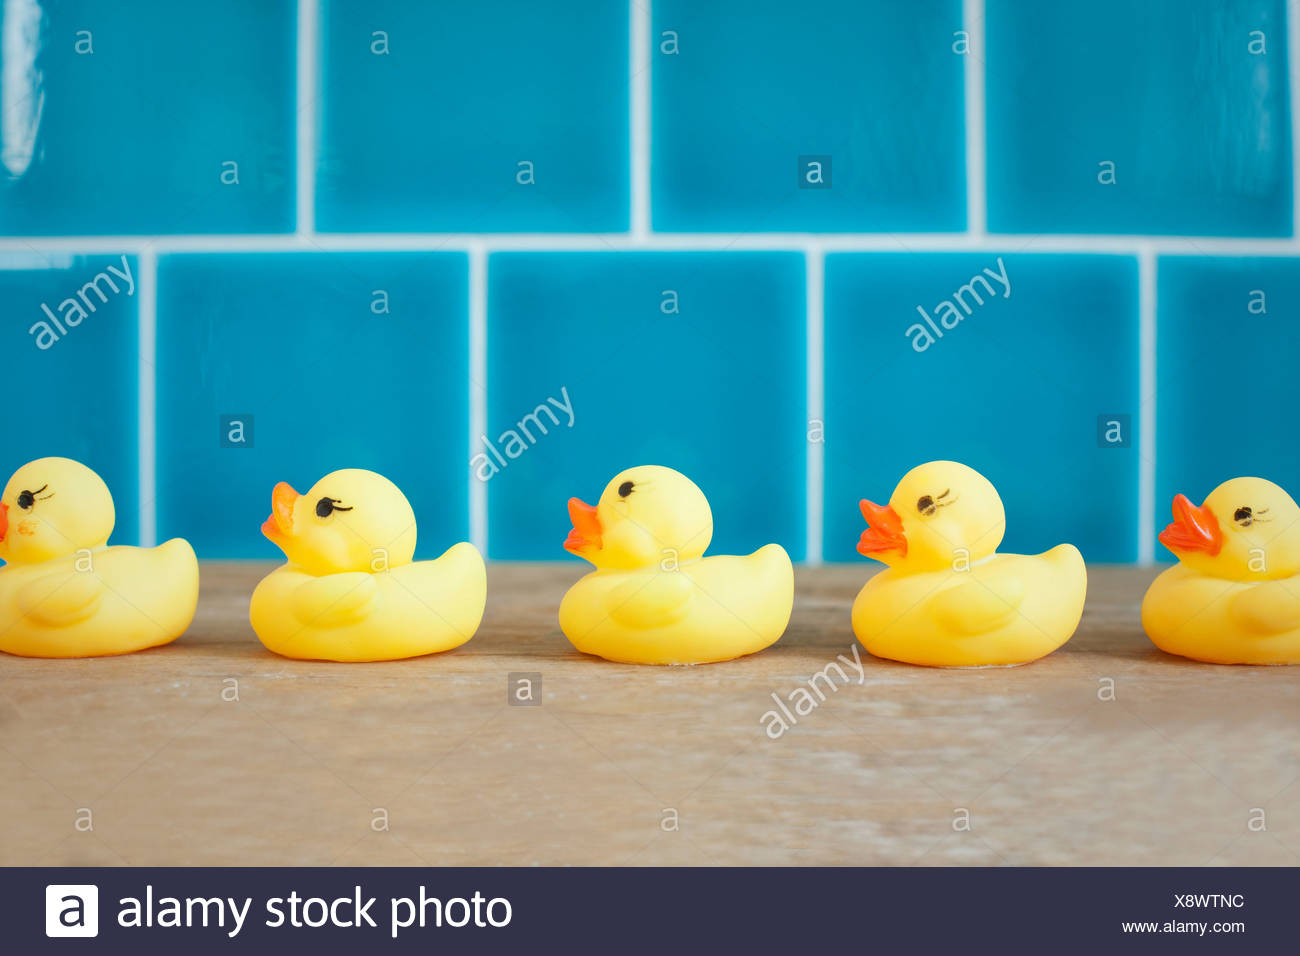 Rubber ducks in a row - Stock Image